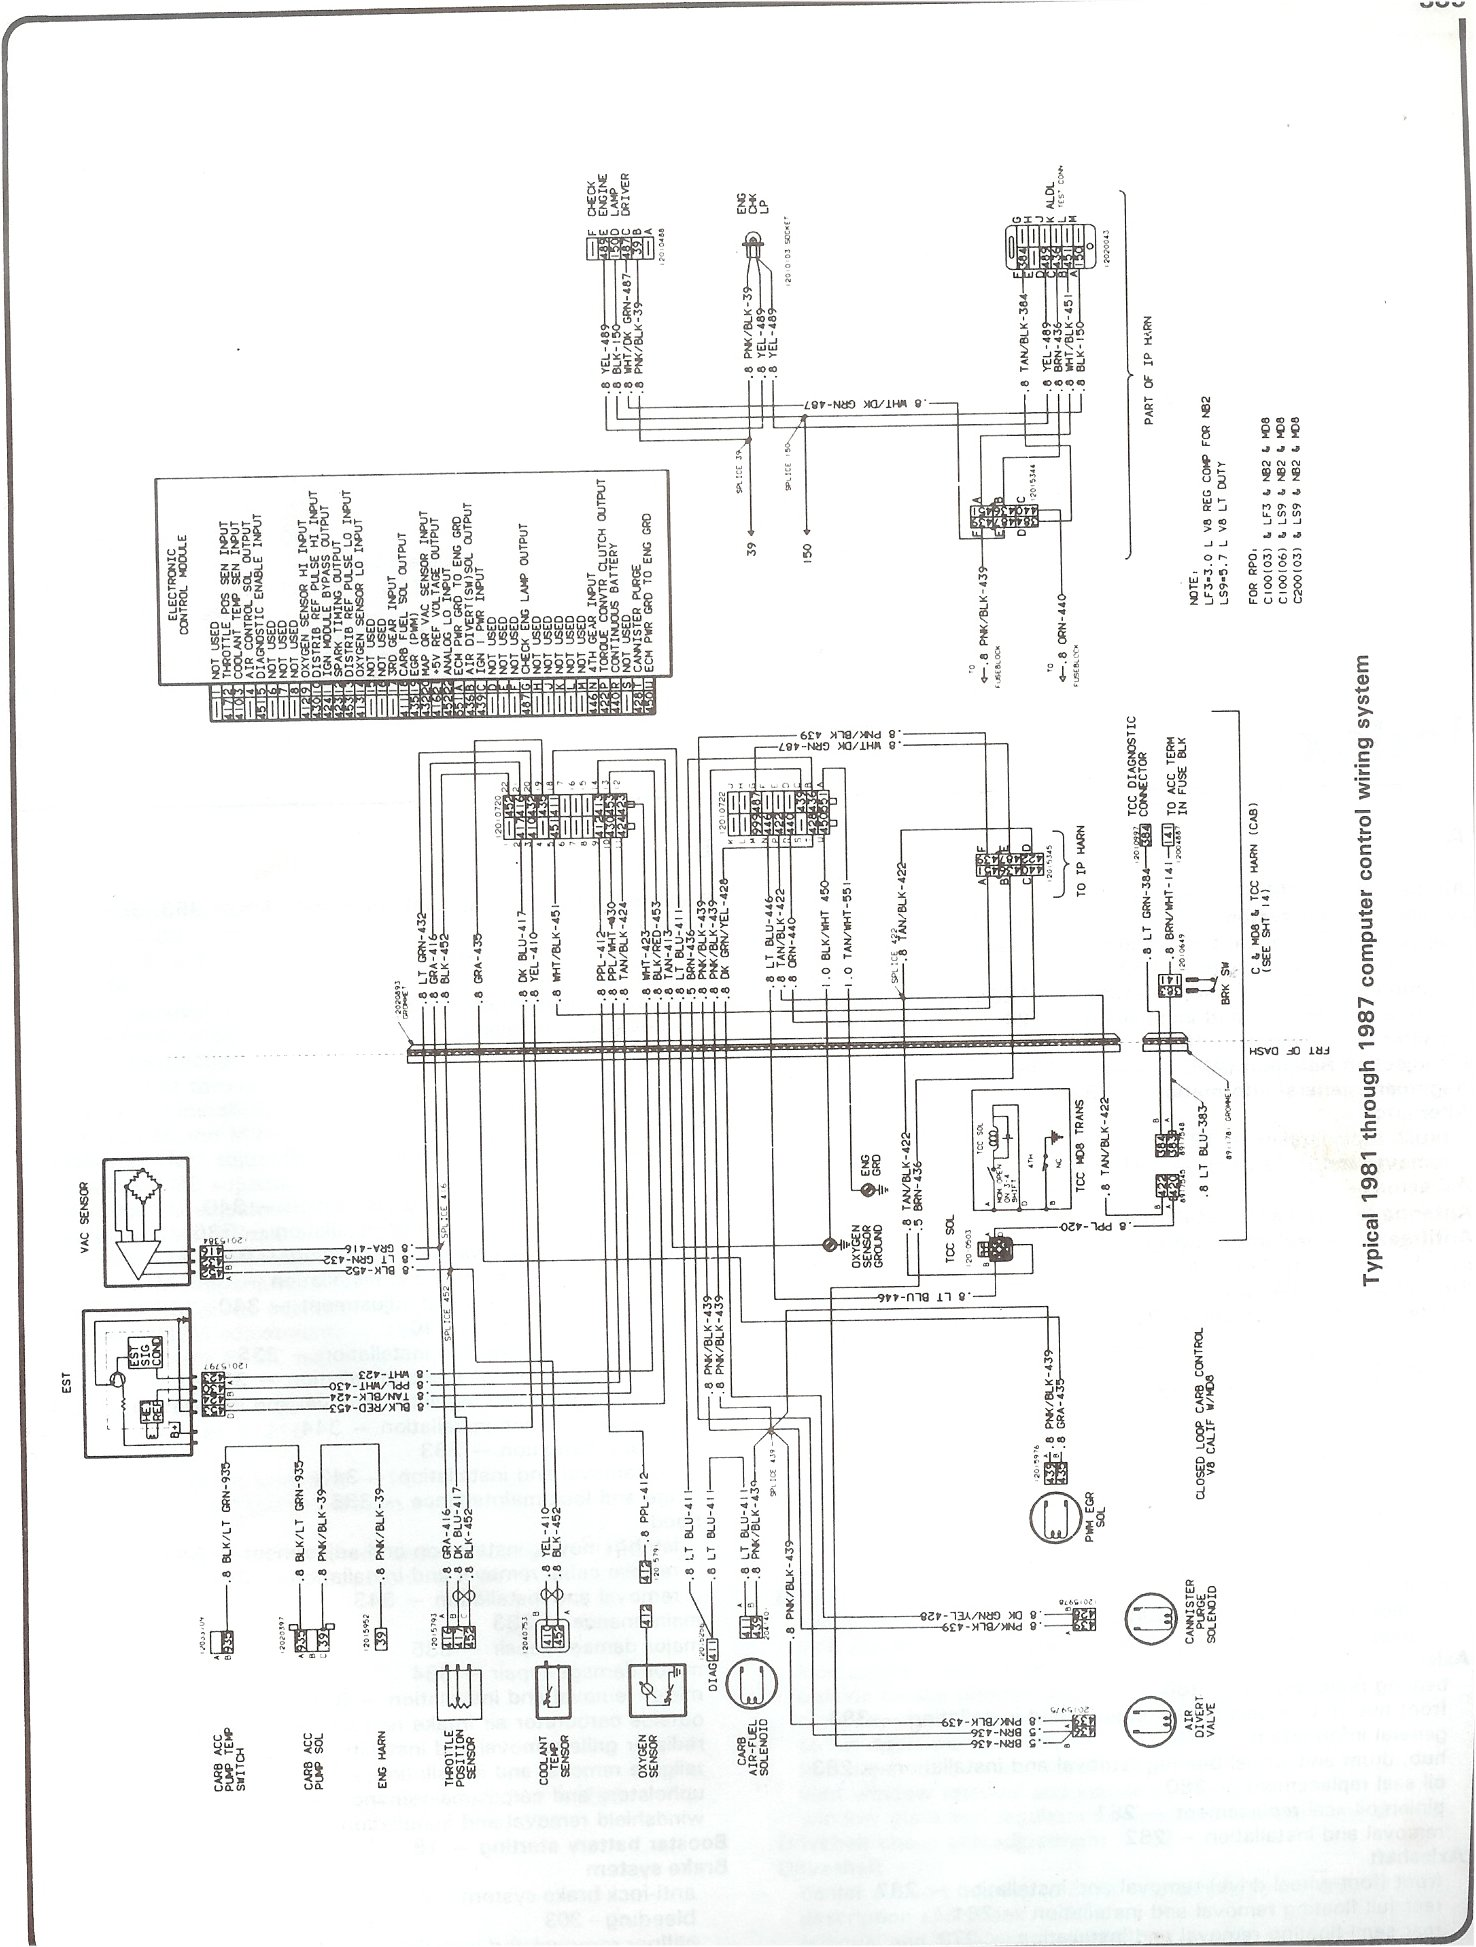 81 87_computer_control_wiring complete 73 87 wiring diagrams Basic Engine Wiring Diagram Chevy at edmiracle.co